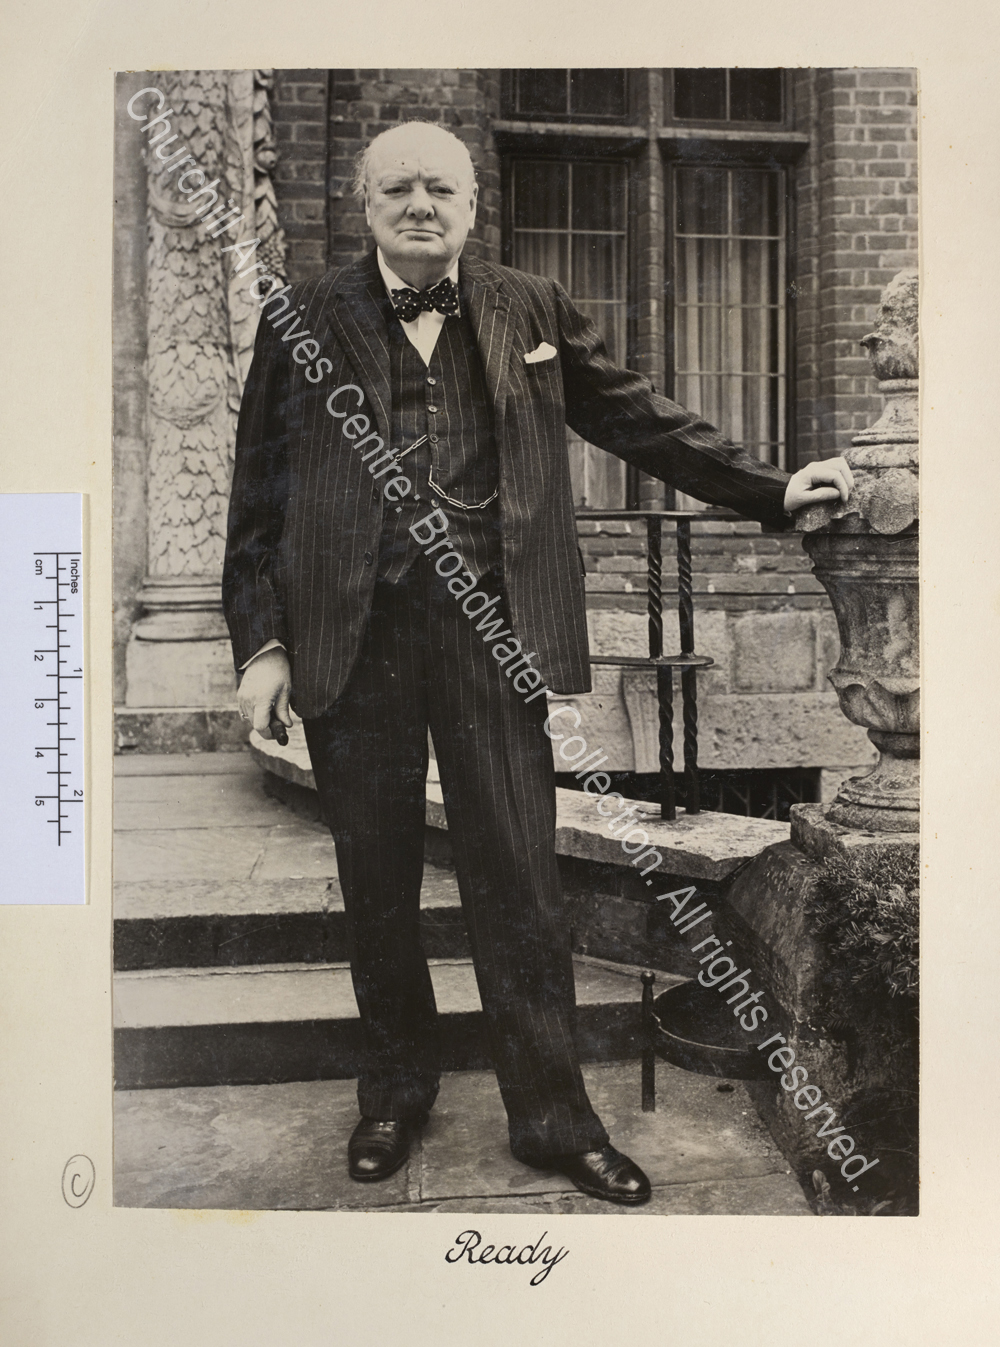 Photo of WSC standing outside the front entrance of Chartwell. He is looking straight to camera